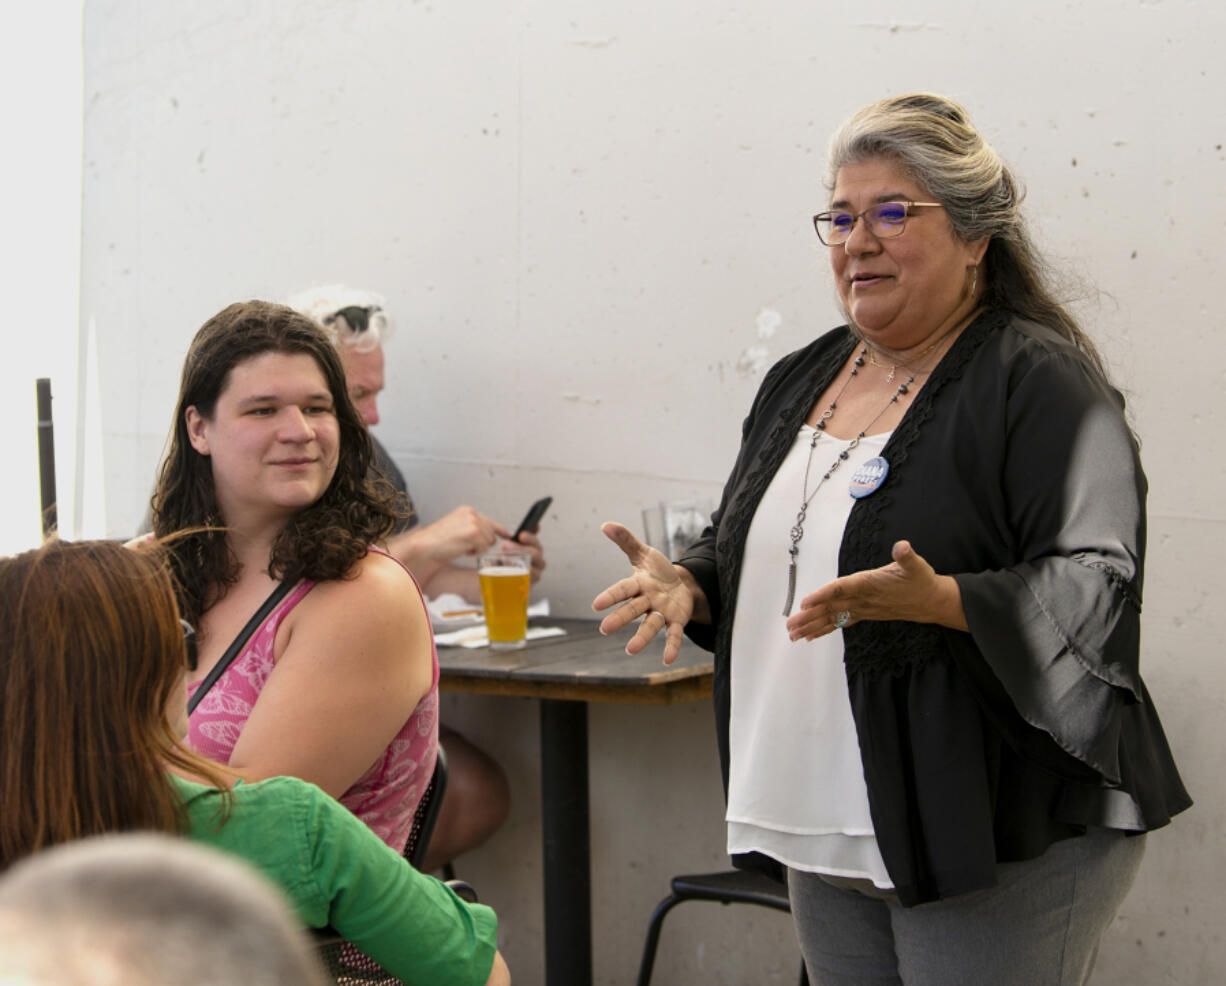 """Vancouver City Council candidate Diana Perez speaks at the """"Ballots and Brews"""" event July 23 in downtown Vancouver."""